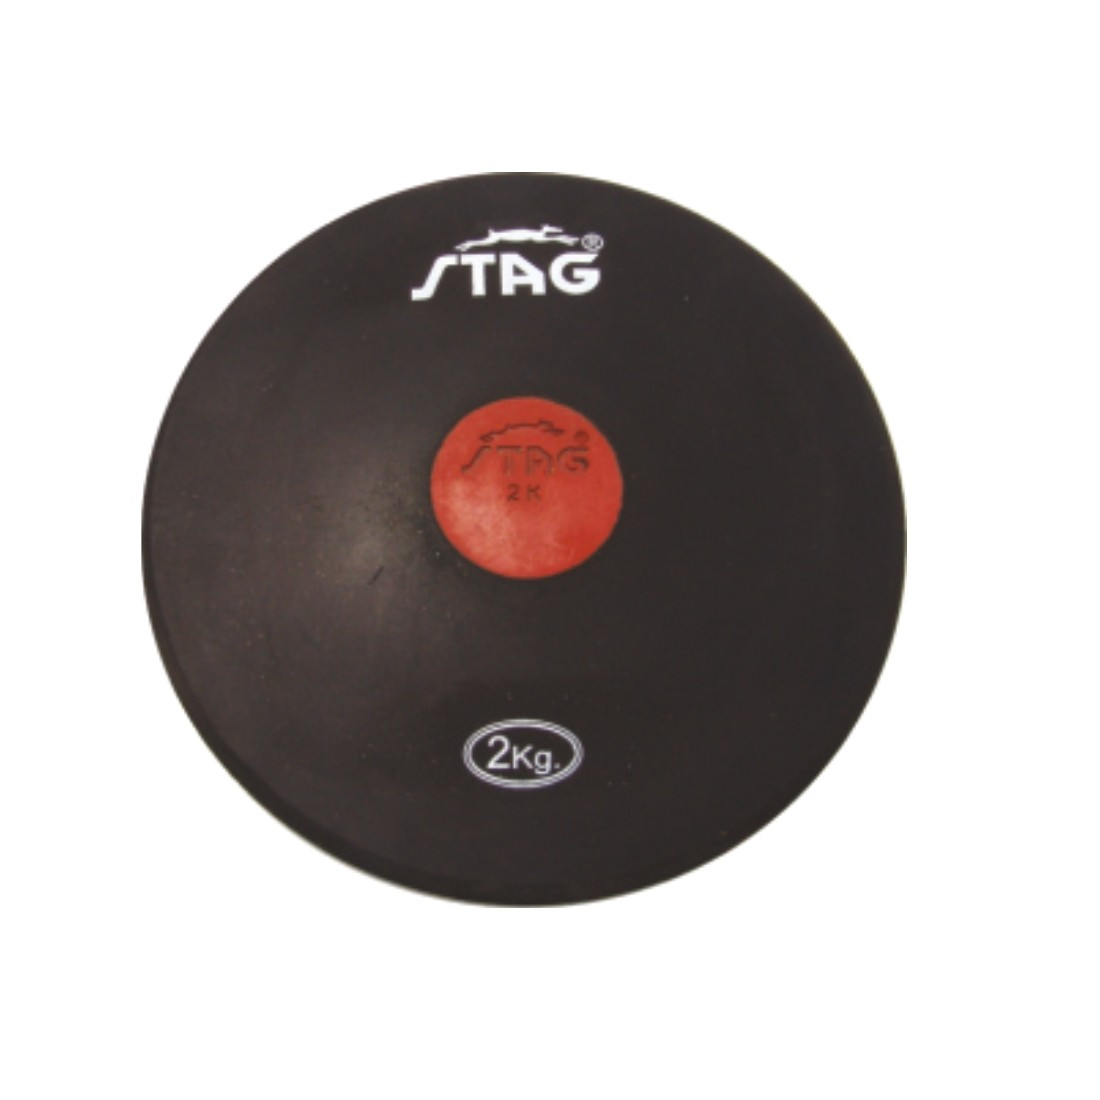 STAG DISCUS COLOURED SYNTHETIC RUBBER 0.5 KG